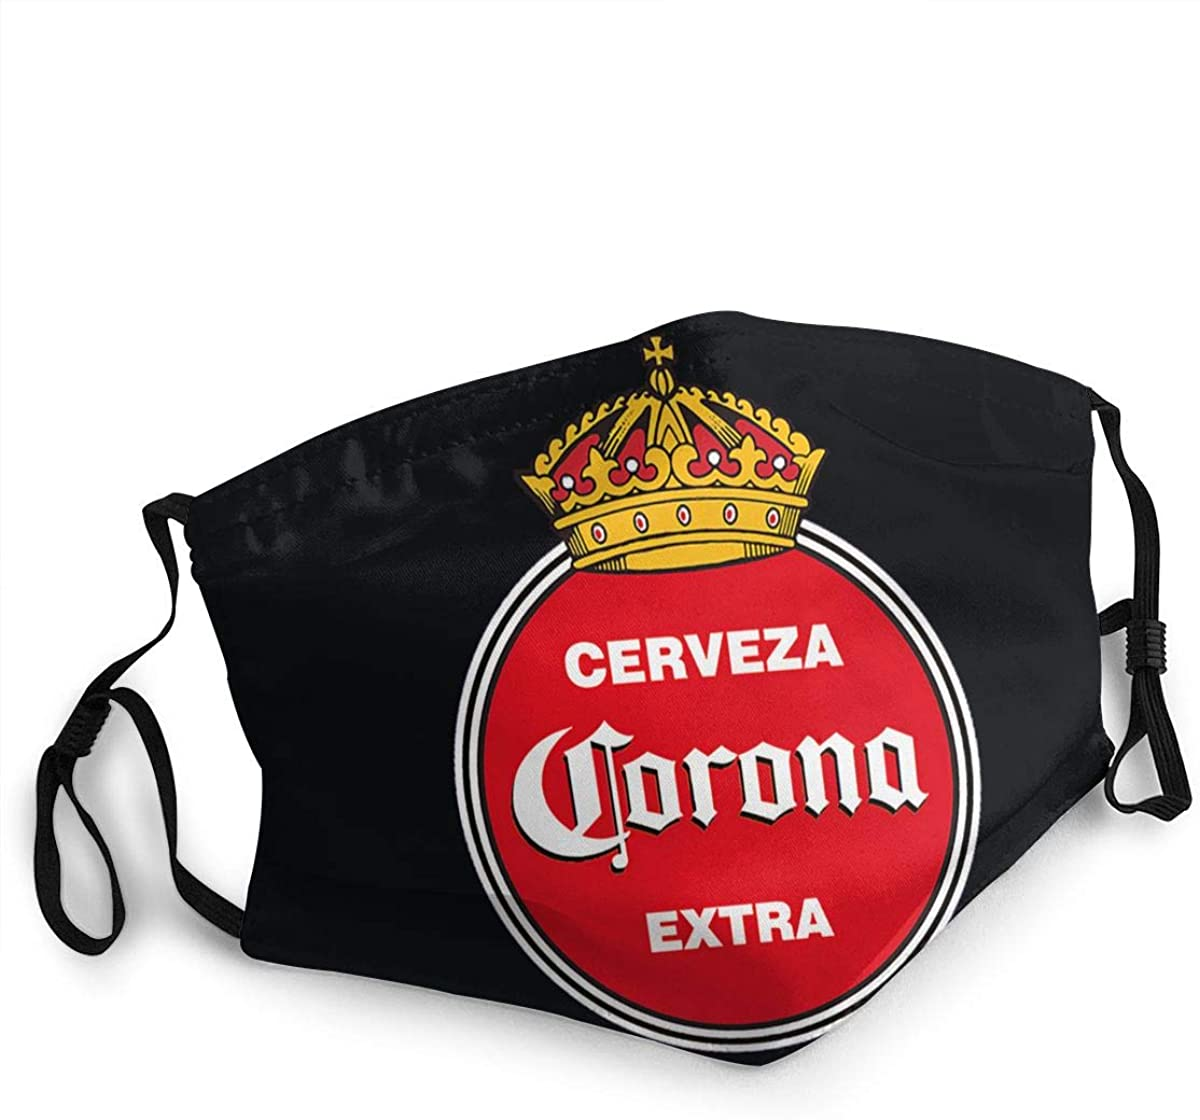 Corona Very Soft, Breathable, Water-Repellent, Washable, Adjustable Elasticity With Buckle